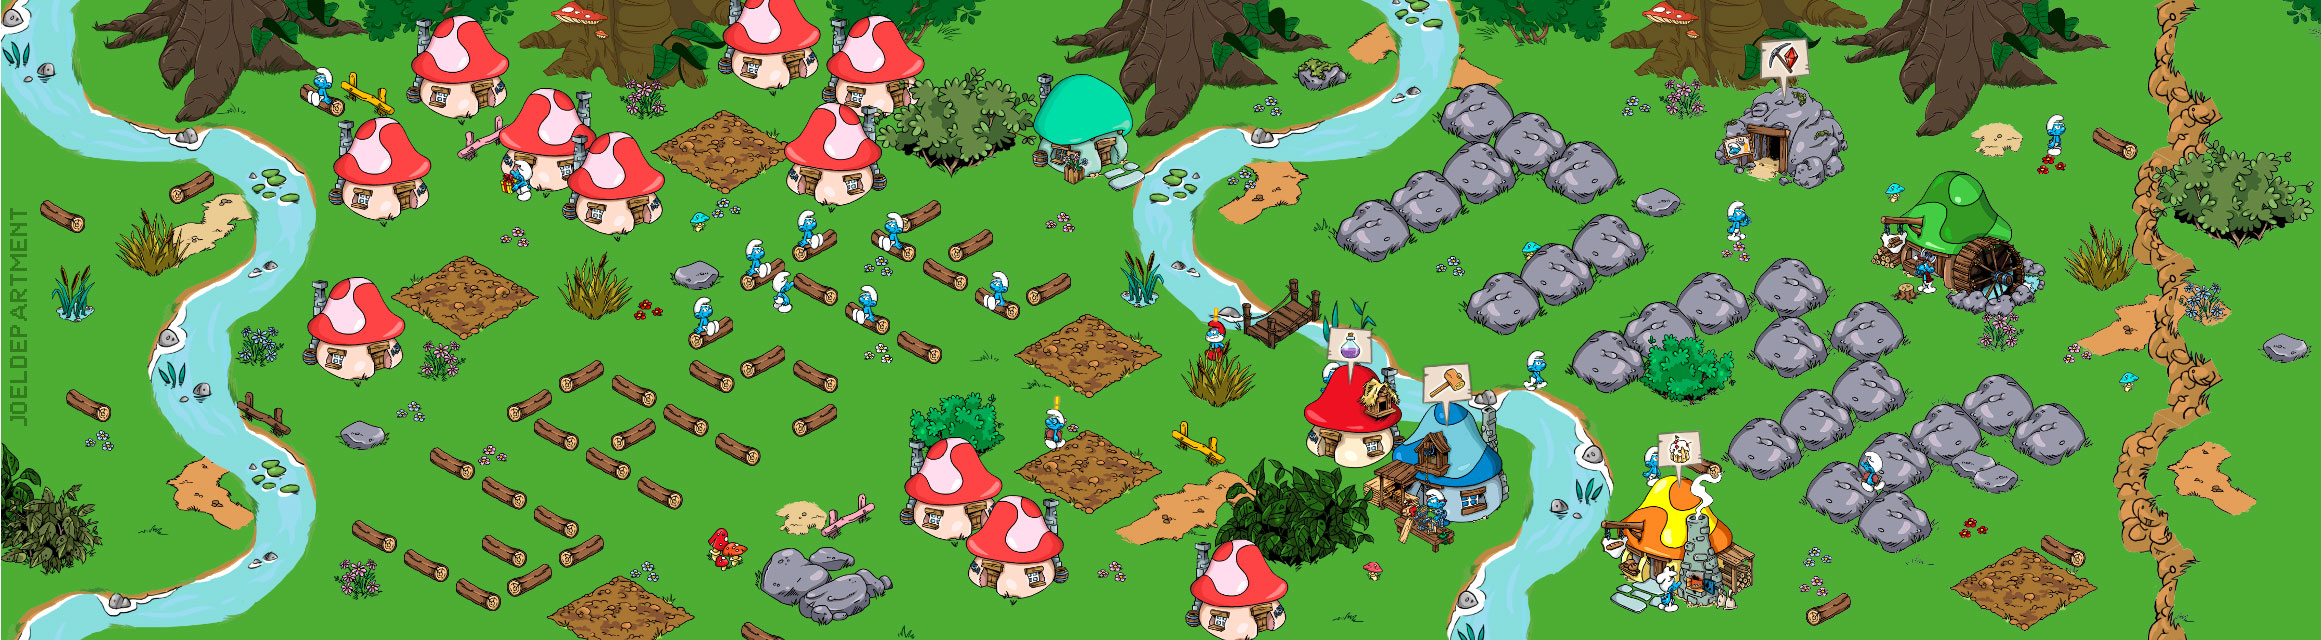 smurfvirus full - How To Get More Wood And Stone In Smurfs Village